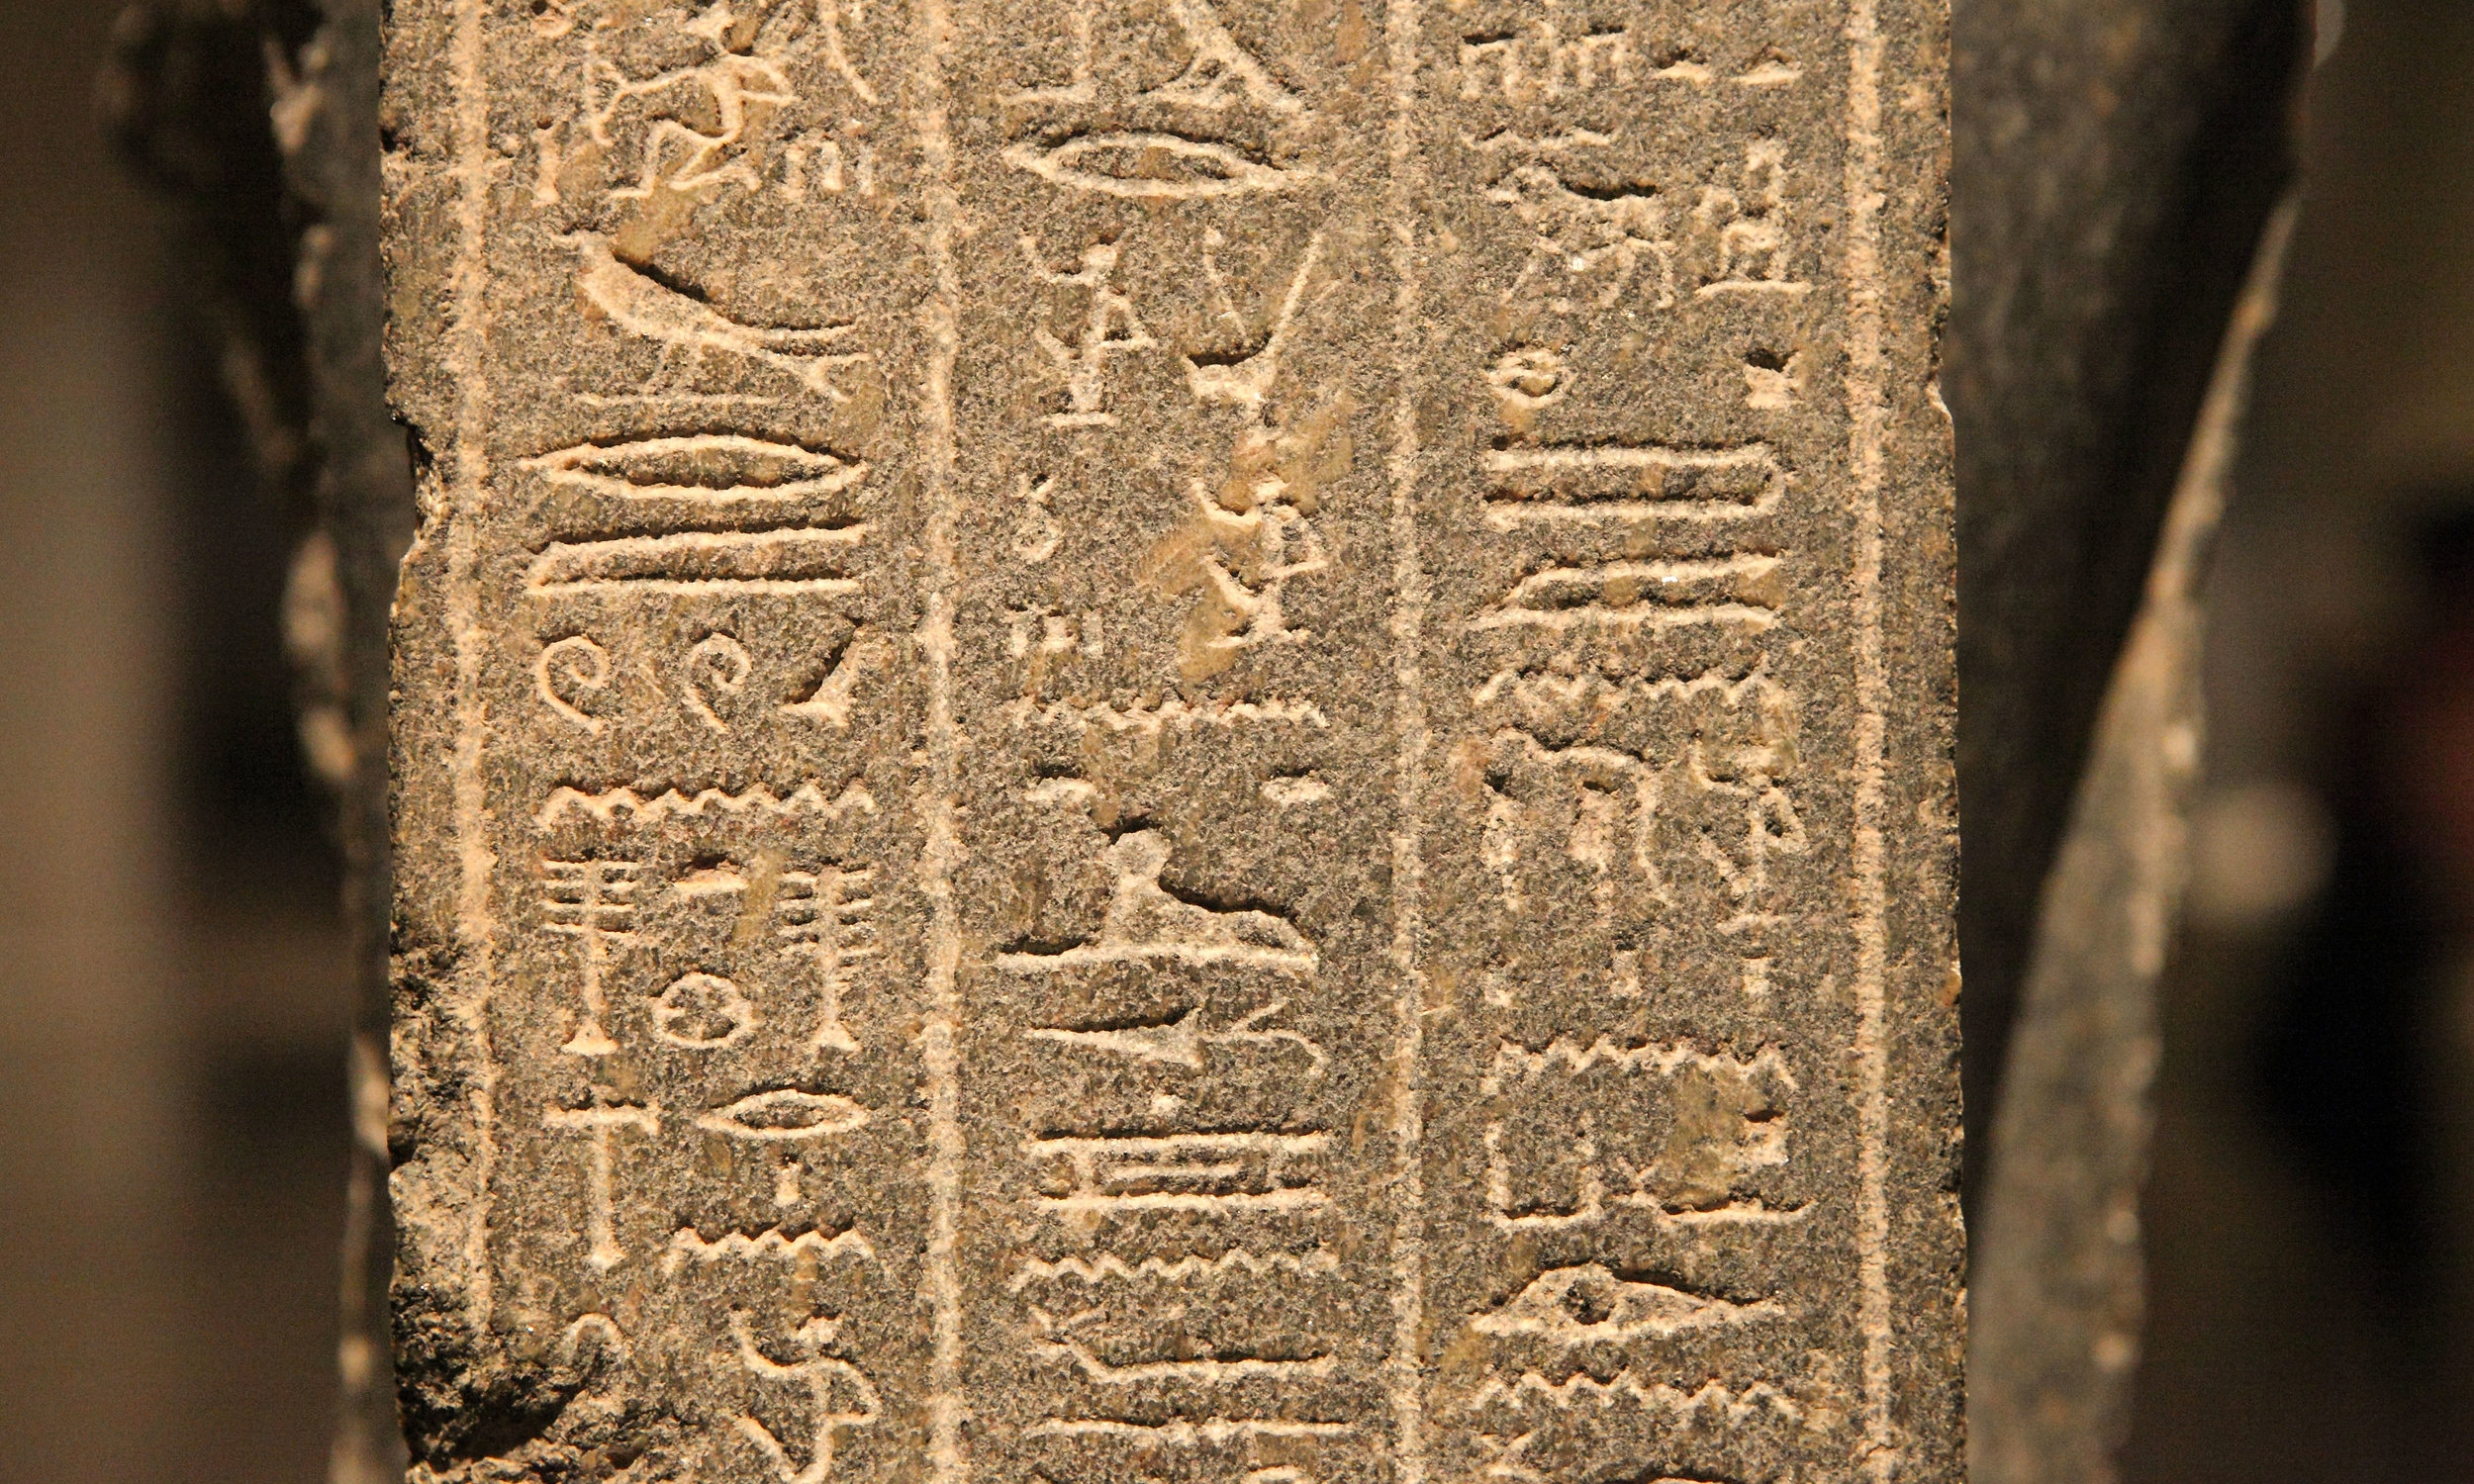 Hieroglyphs: The Emojis of the Ancient World? Not Quite -